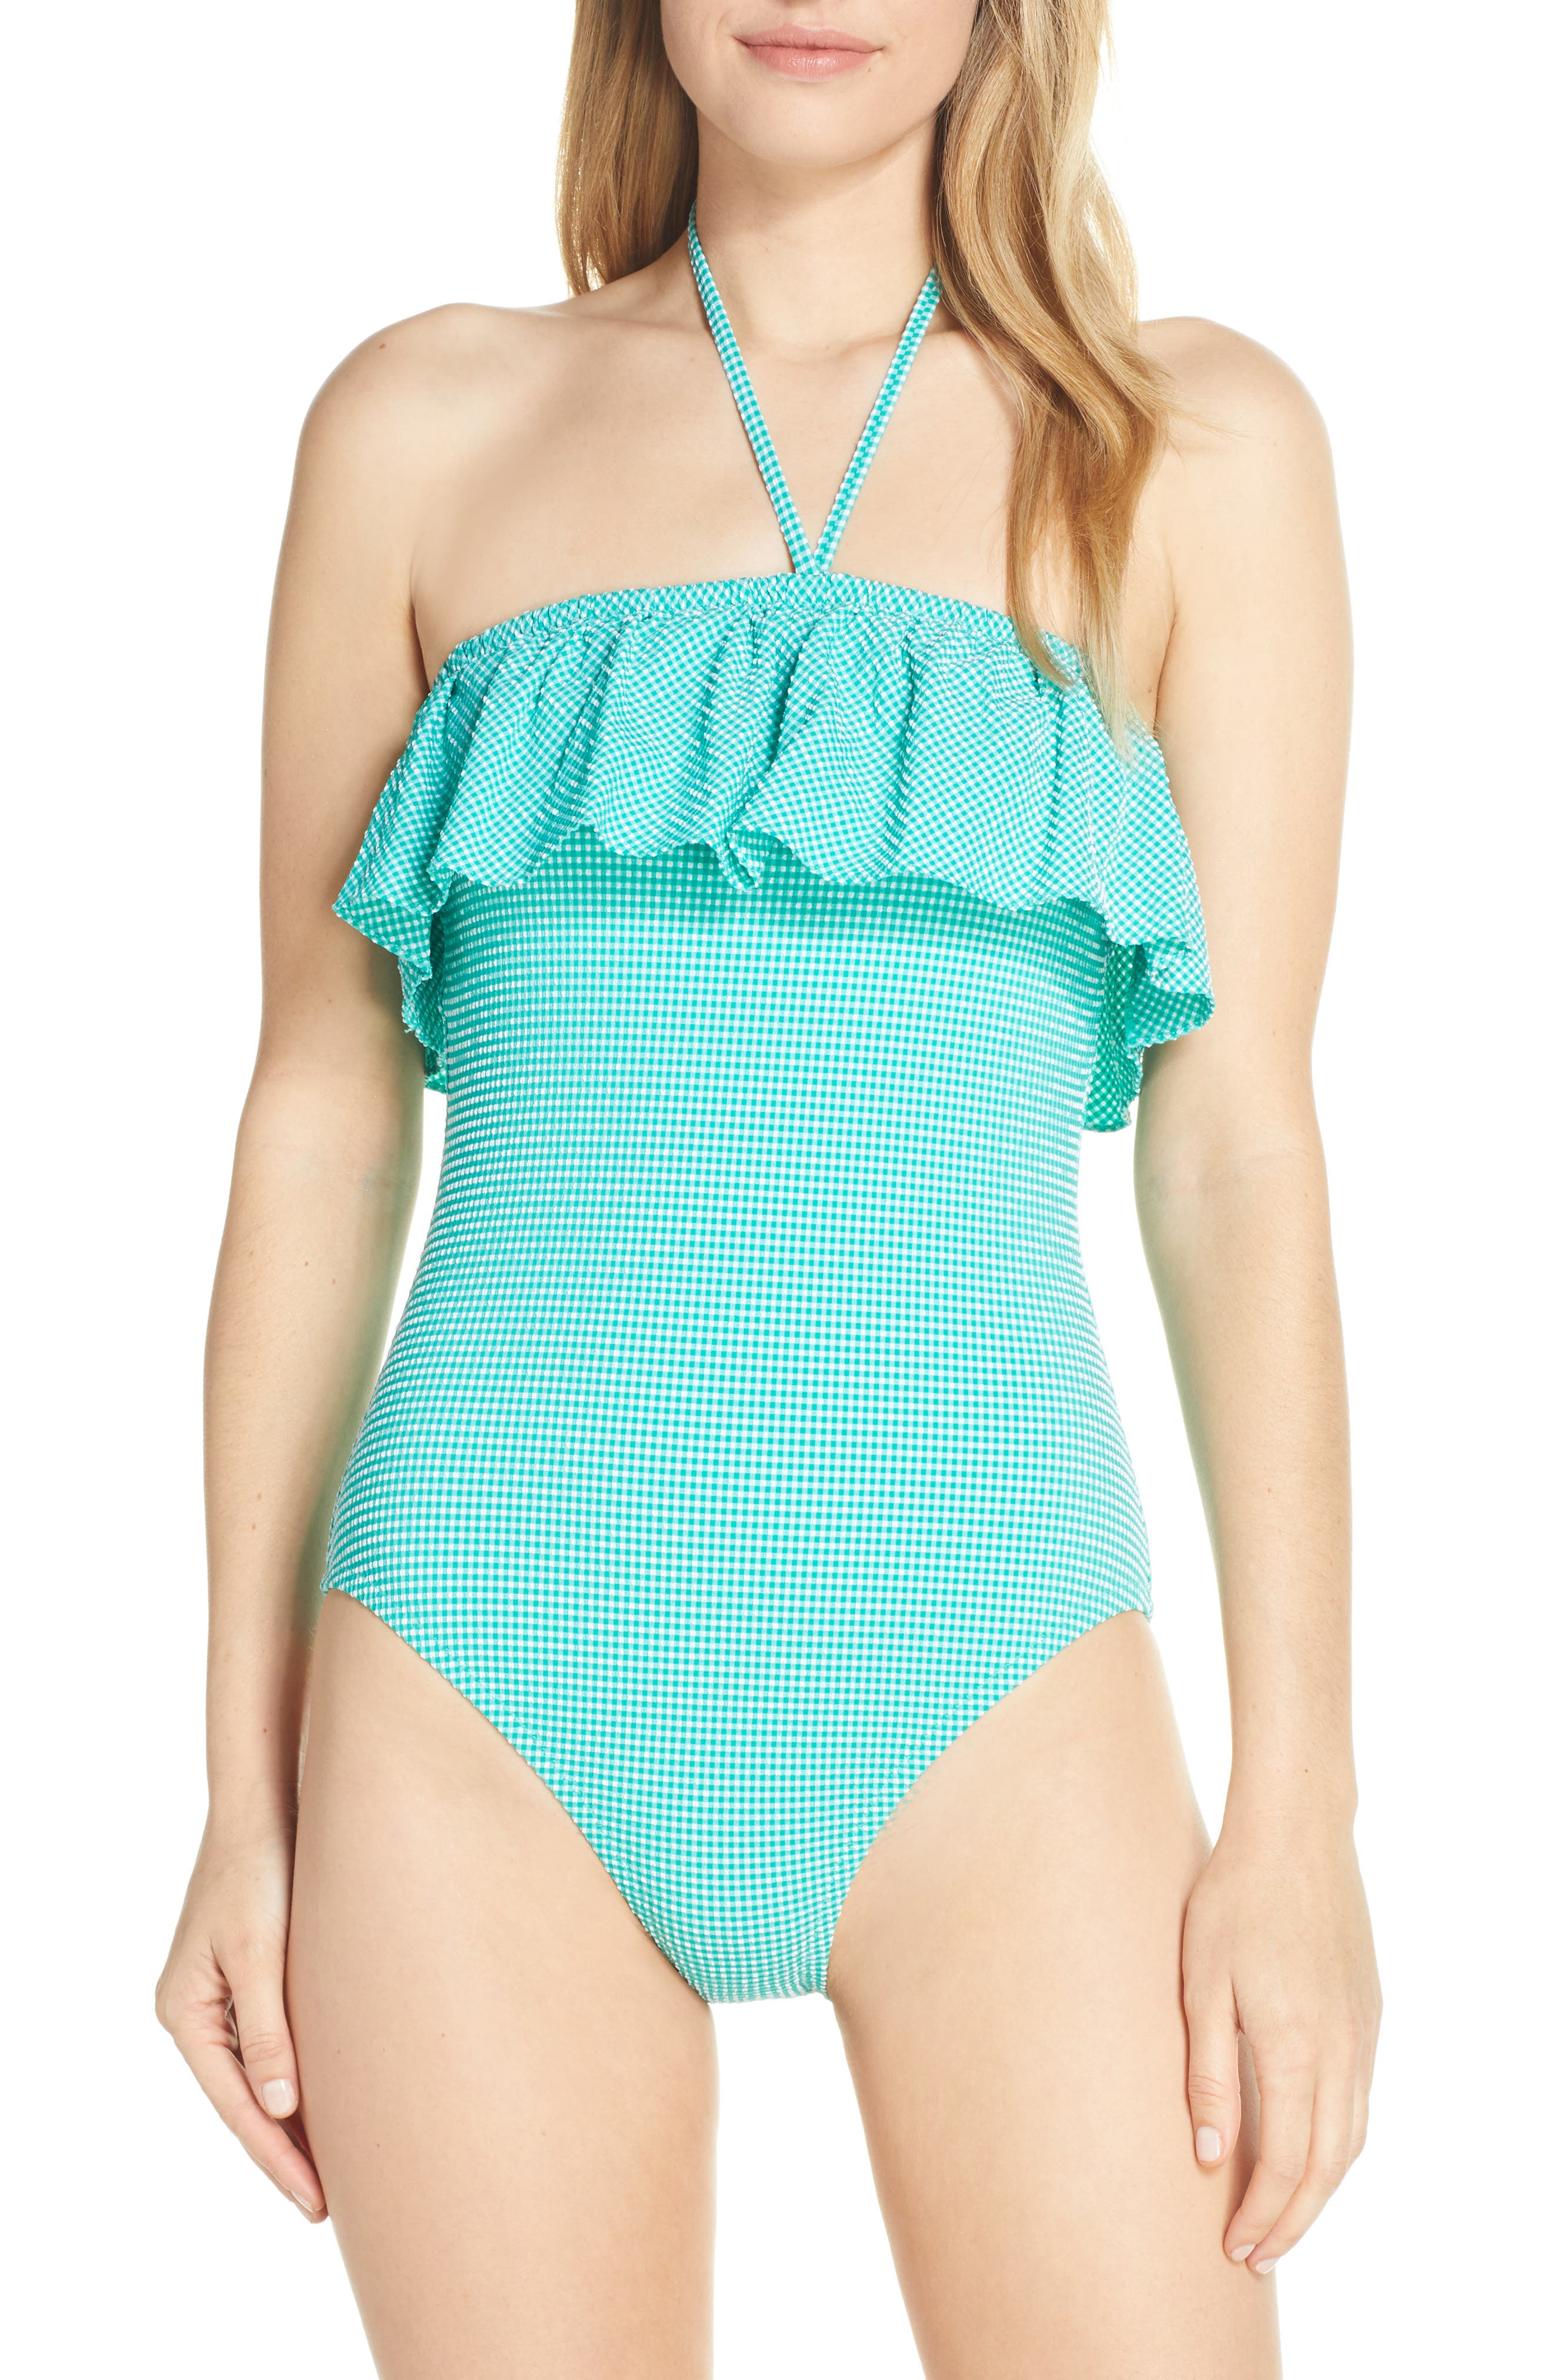 J.crew Gingham Ruffle Bandeau One-Piece Swimsuit, Green